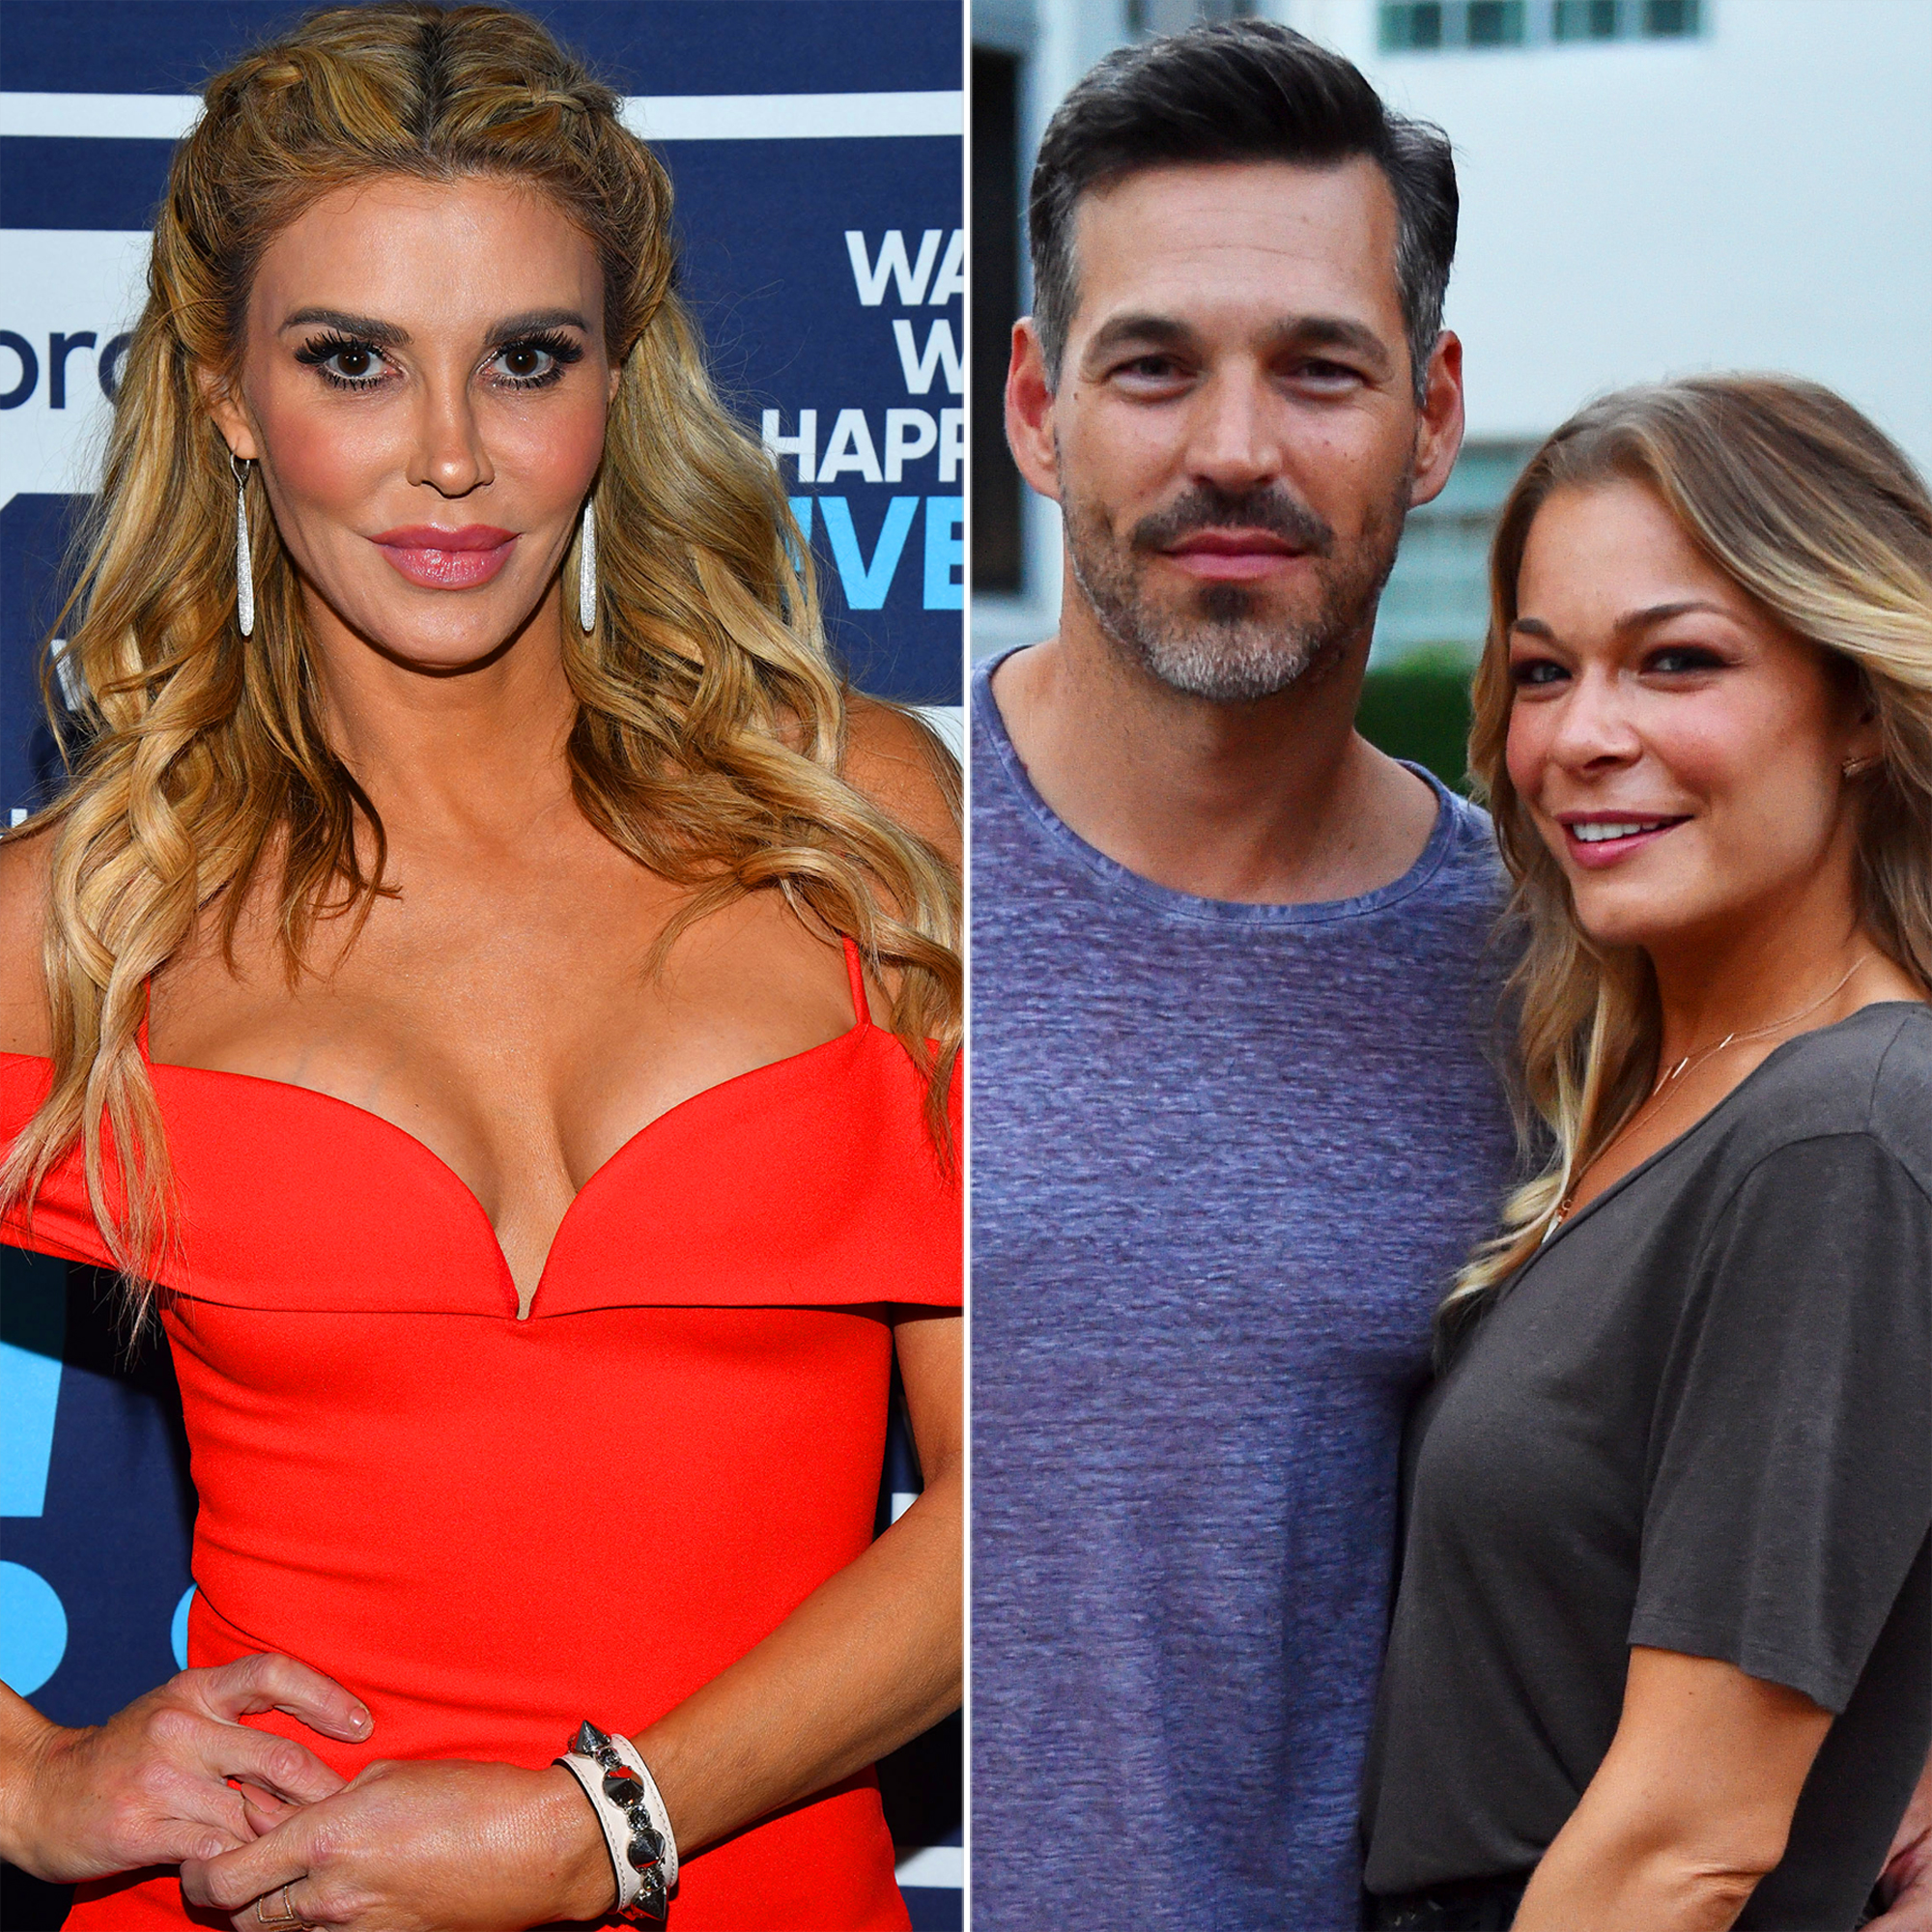 Revisit Brandi Glanville's Feud With Eddie Cibrian and LeAnn Rimes - WATCH WHAT HAPPENS LIVE WITH ANDY COHEN — Pictured: Brandi Glanville — (Photo by: Charles Sykes/Bravo/NBCU Photo Bank via Getty Images) MIAMI, FL – JULY 18: Eddie Cibrian (L) and Singer LeAnn Rimes attend the Maxim Magazine Worldwide Swimwear Collection launch at SLS South Beach on July 18, 2015 in Miami, Florida. (Photo by Fabiano […]